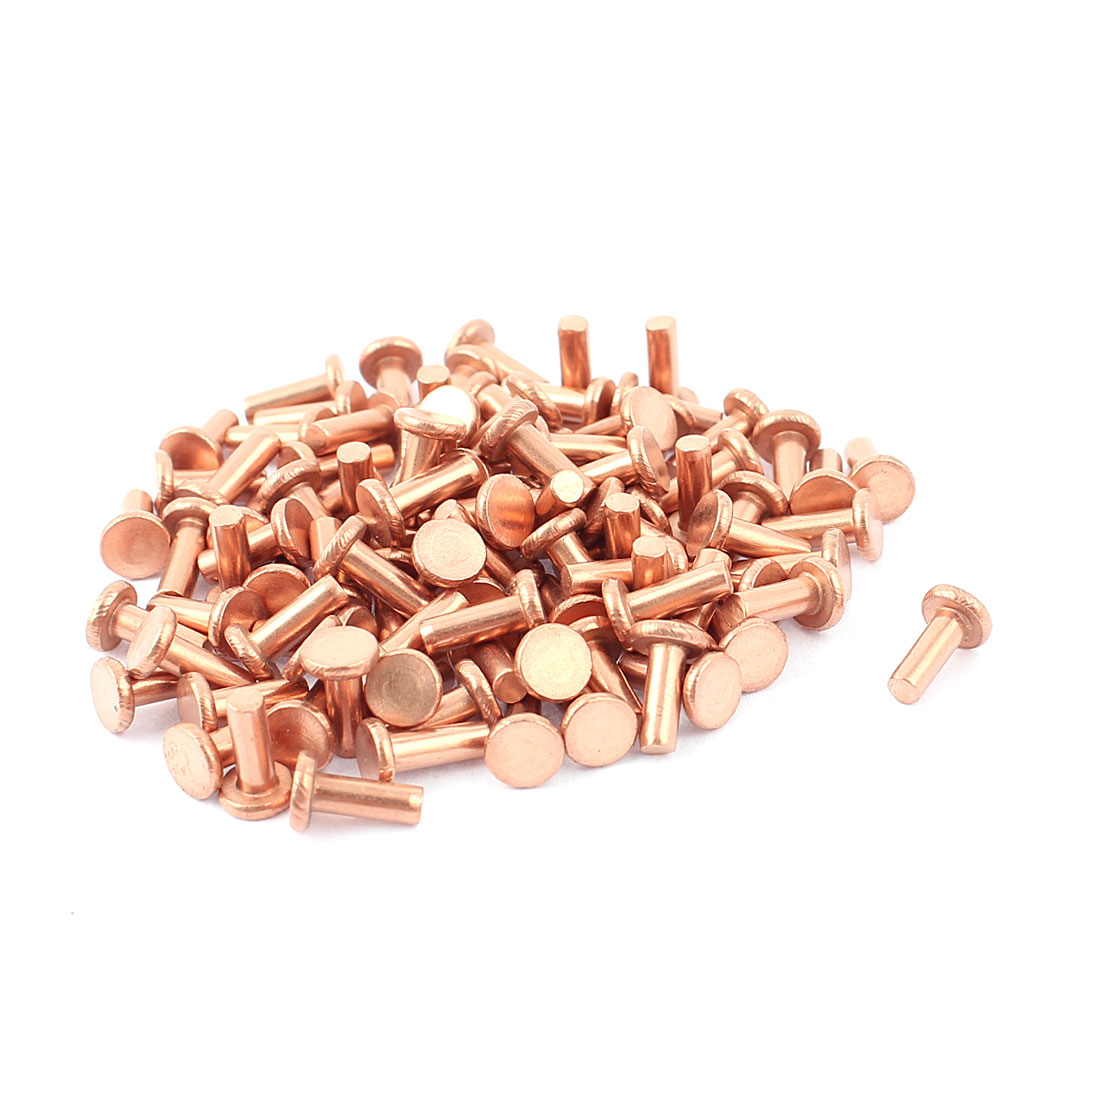 "100 Pcs 1/8"" Diameter 5/16"" Long Shank Flat Head Bolts Copper Solid Rivets Fasteners"